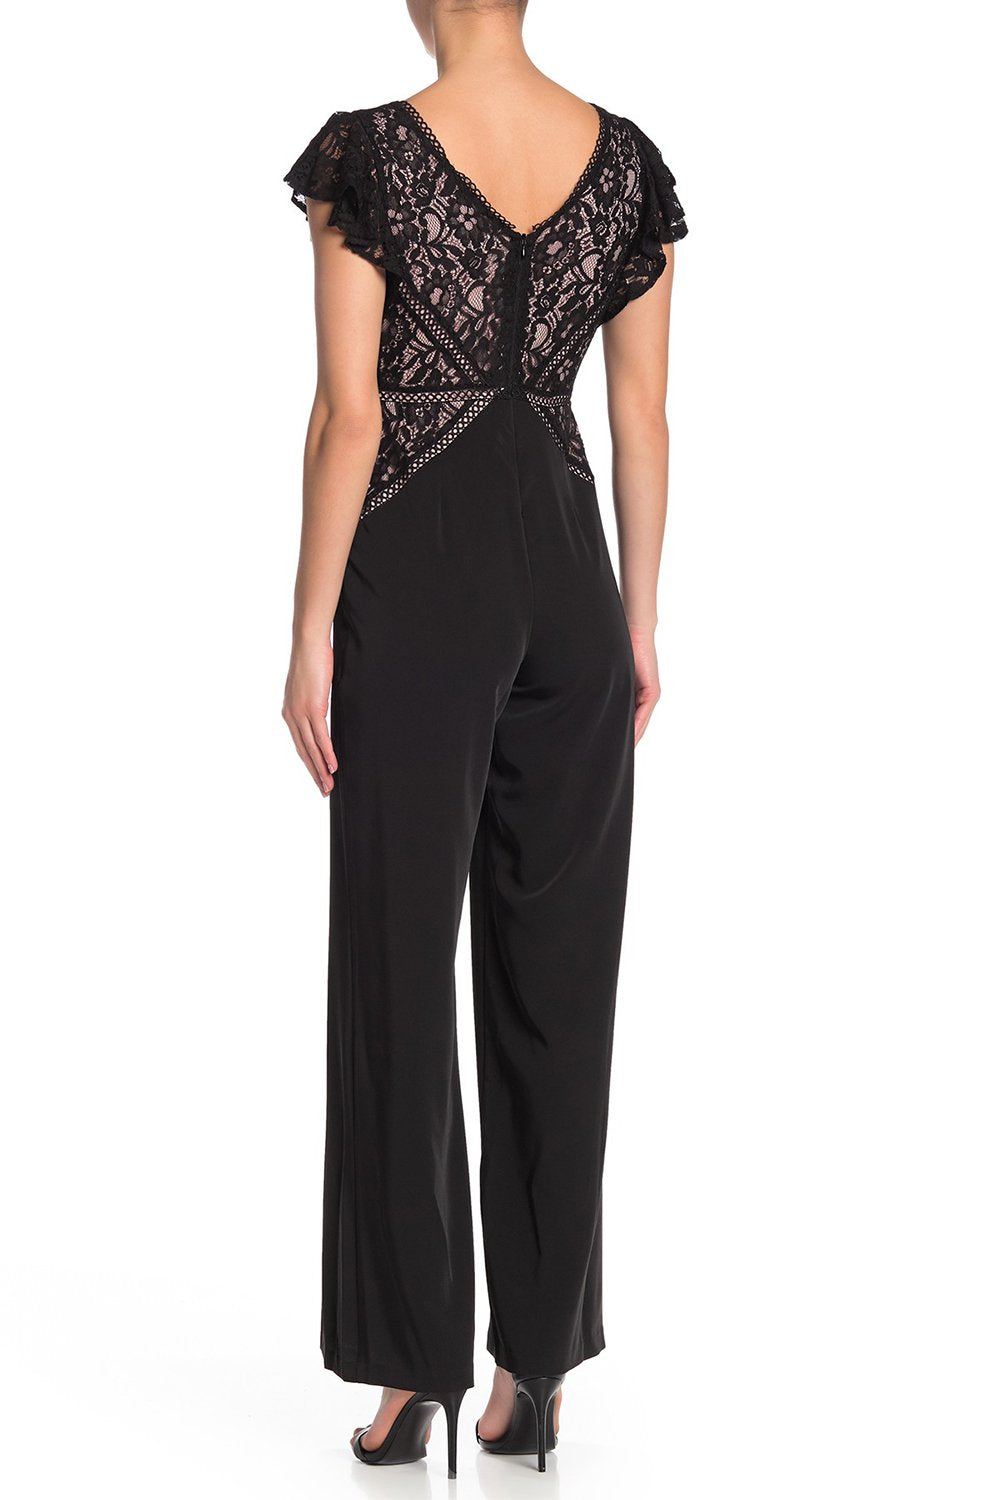 Taylor - 1443M Lace V-neck Stretch Crepe Jumpsuit In Black